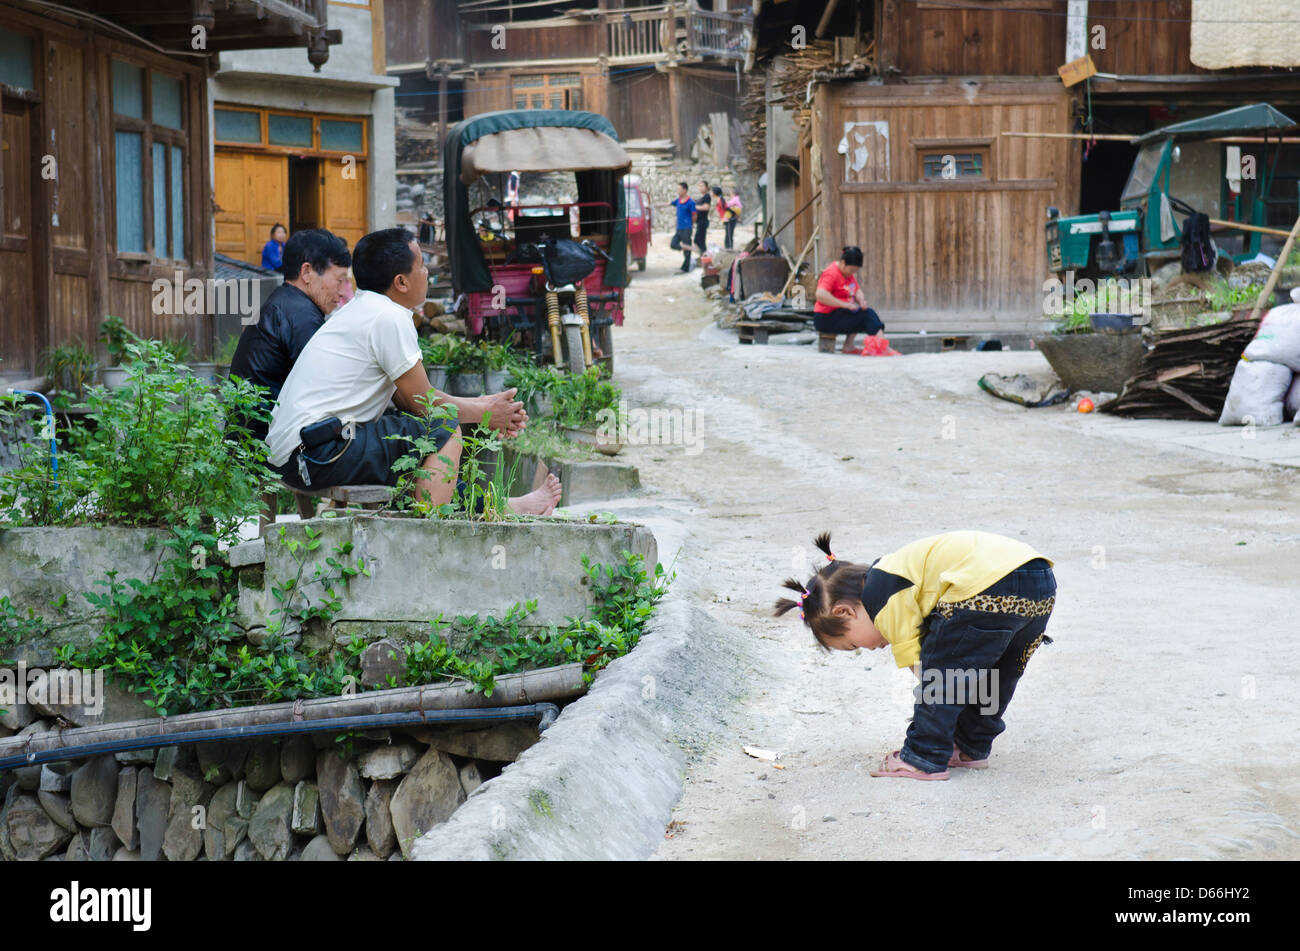 Funny Street Scene Zhaoxing village and river in the Guizhou province of China - Stock Image